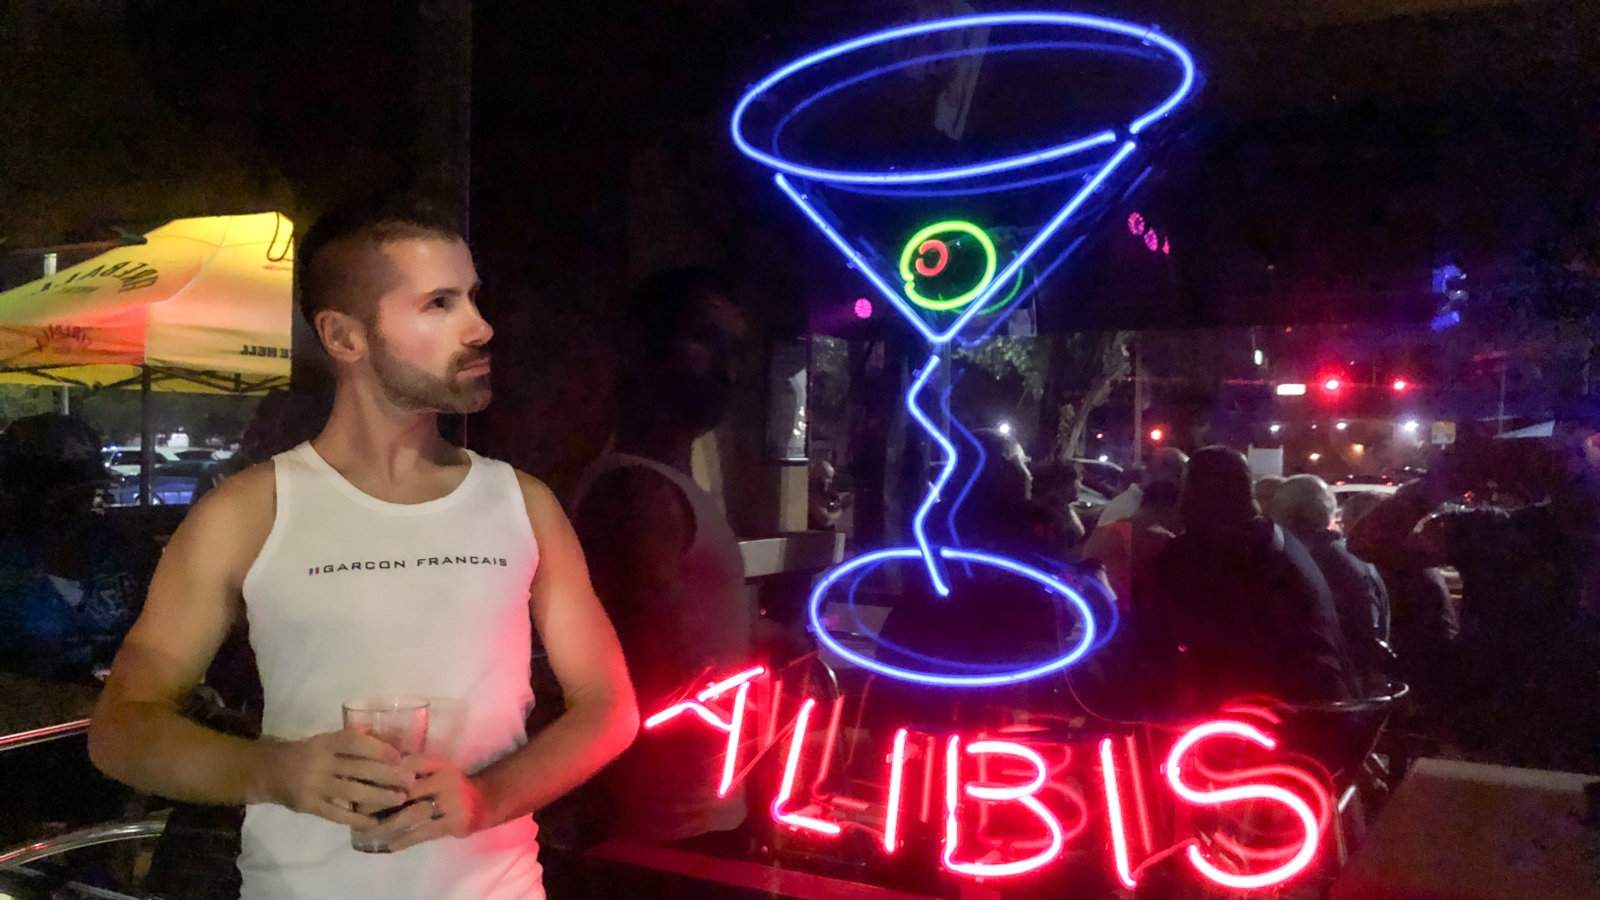 Georgie's Alibi Monkey Bar is the biggest, and arguably most famous, gay bar in Fort Lauderdale